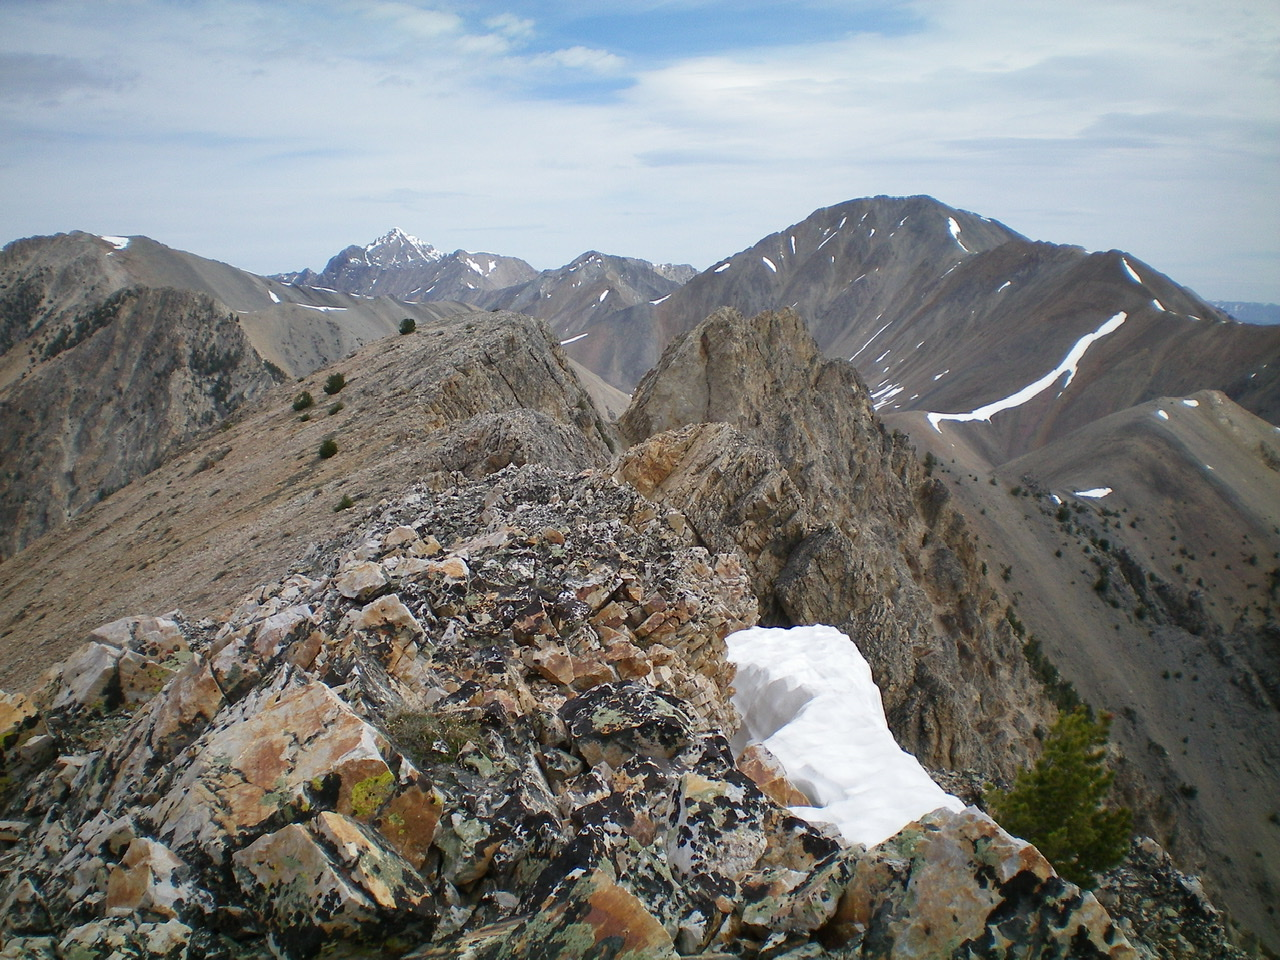 The summit ridge area of Sunny Bar Peak, looking NNE from the South Summit. Livingston Douglas Photo